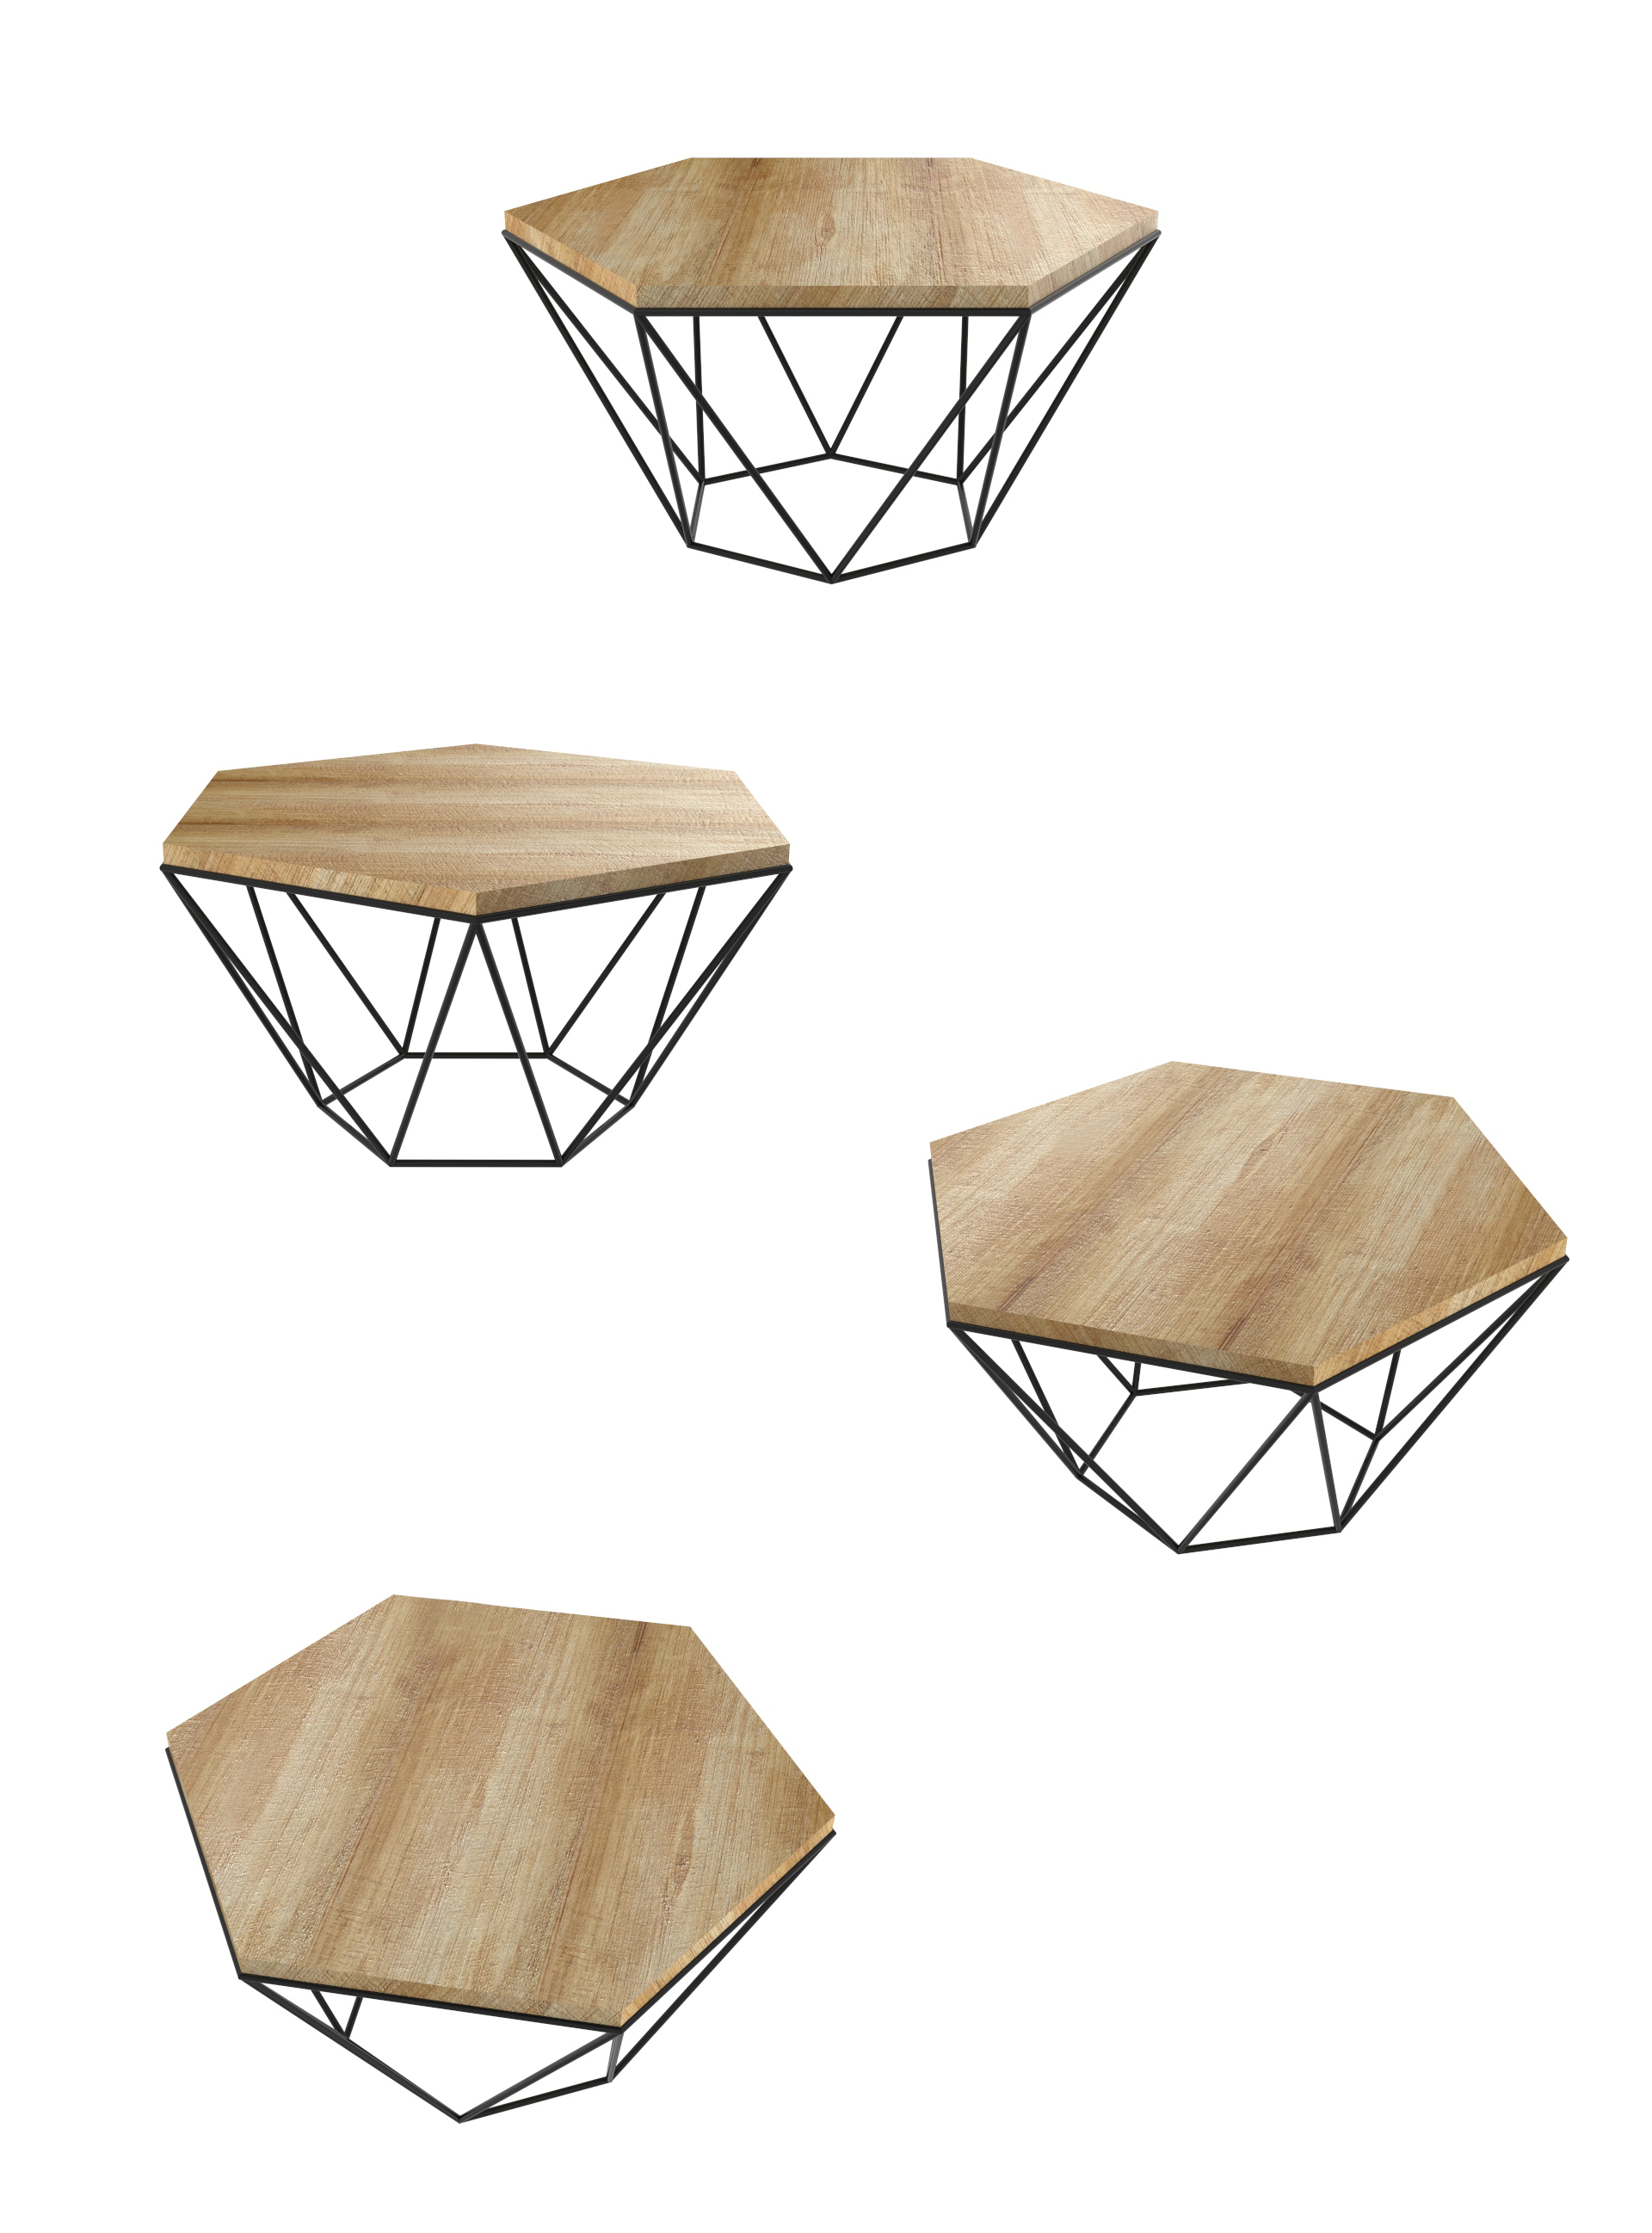 hex-coffee-table-project-pawlowska-design